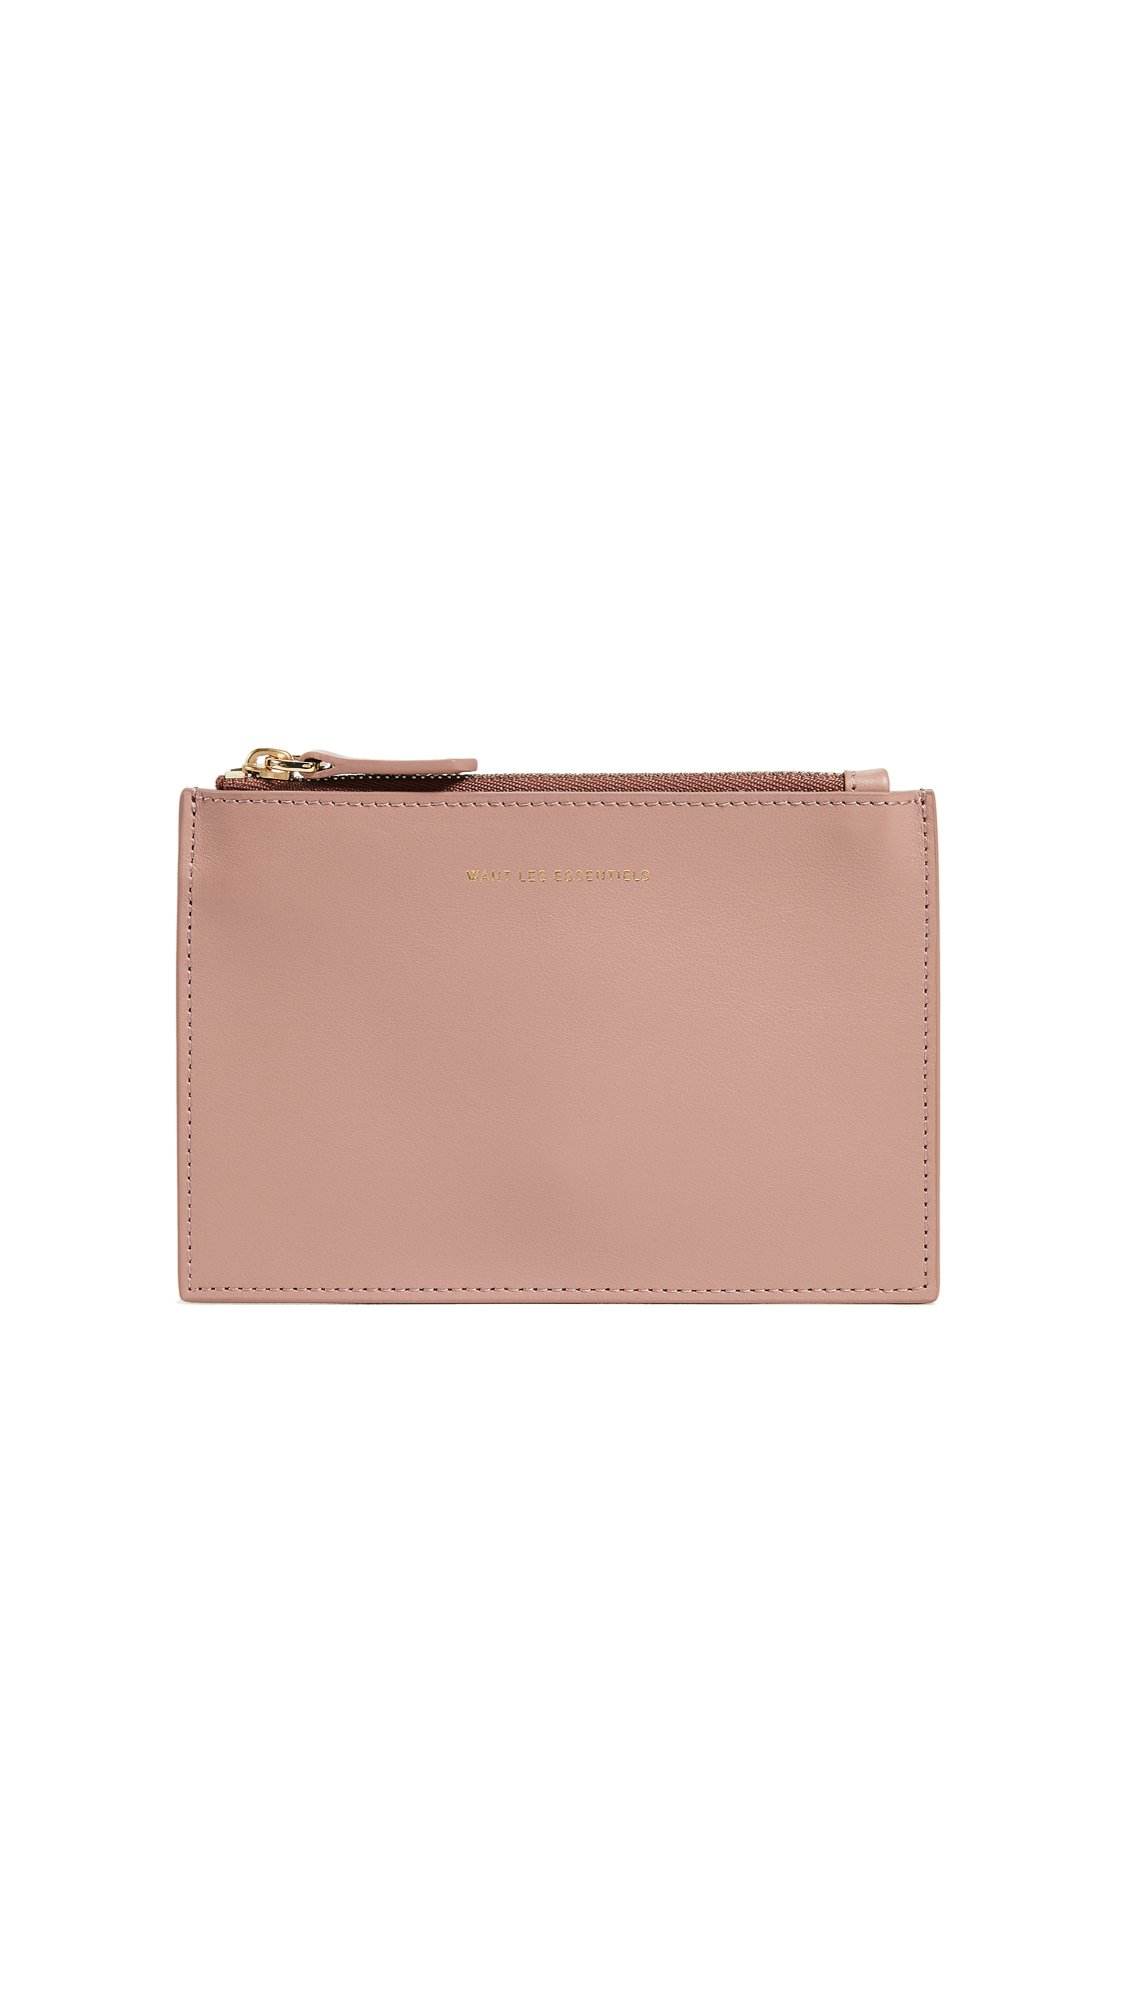 WANT LES ESSENTIELS Women's Mini Lawrence Zip Pouch, Canyon Rose, One Size by WANT LES ESSENTIELS